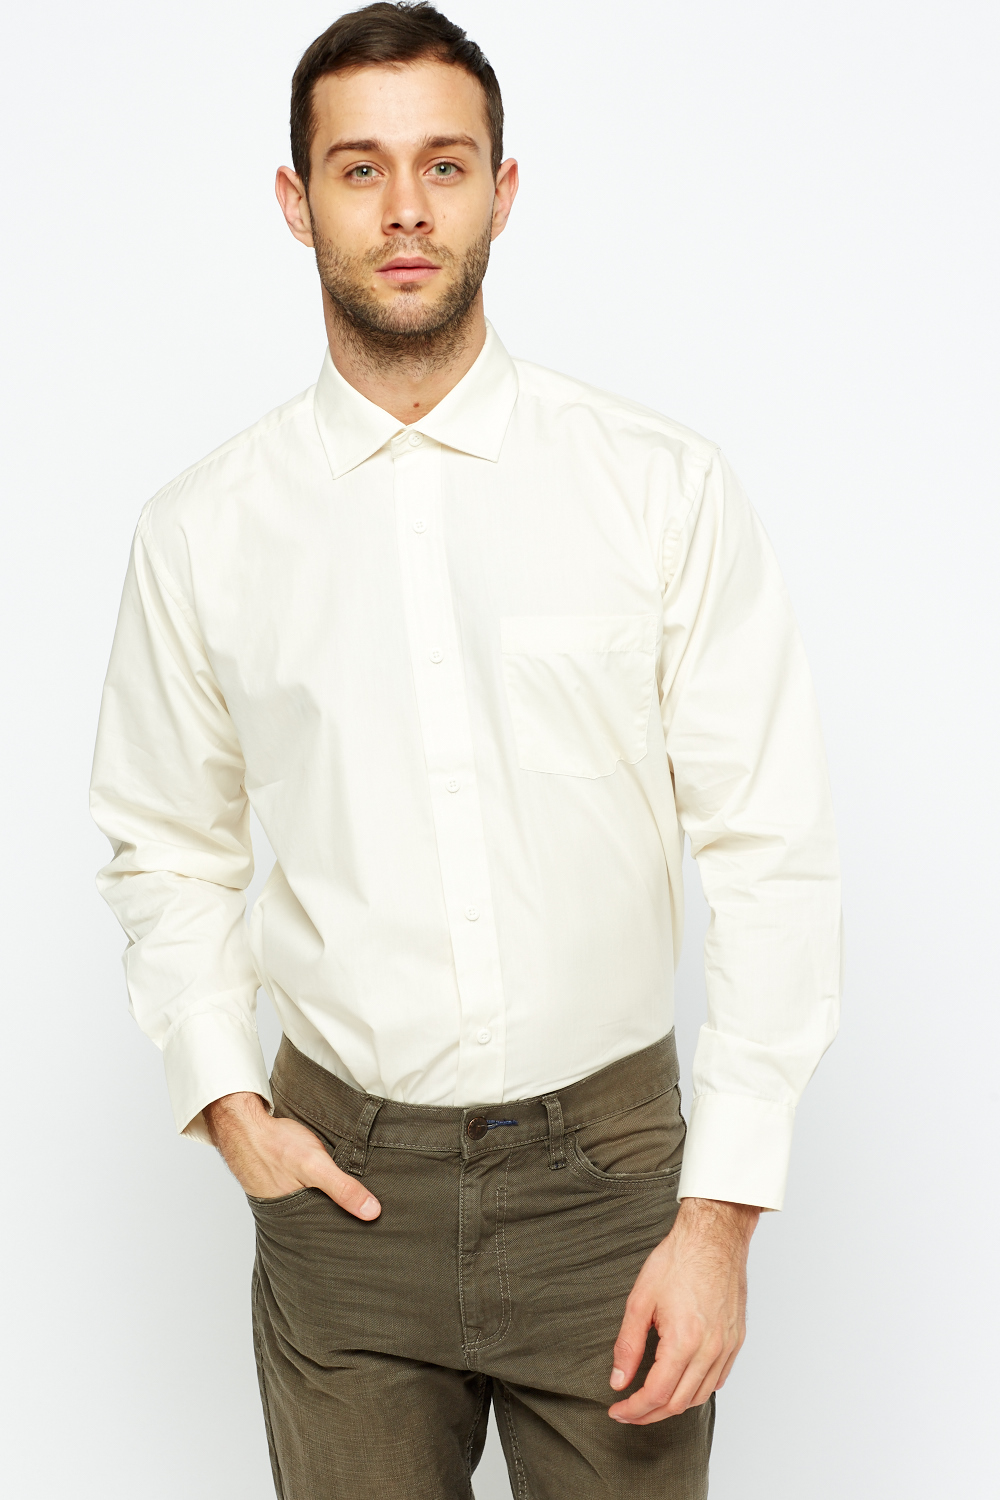 f1314db7ae5 Cream Mens Shirt - Just £5